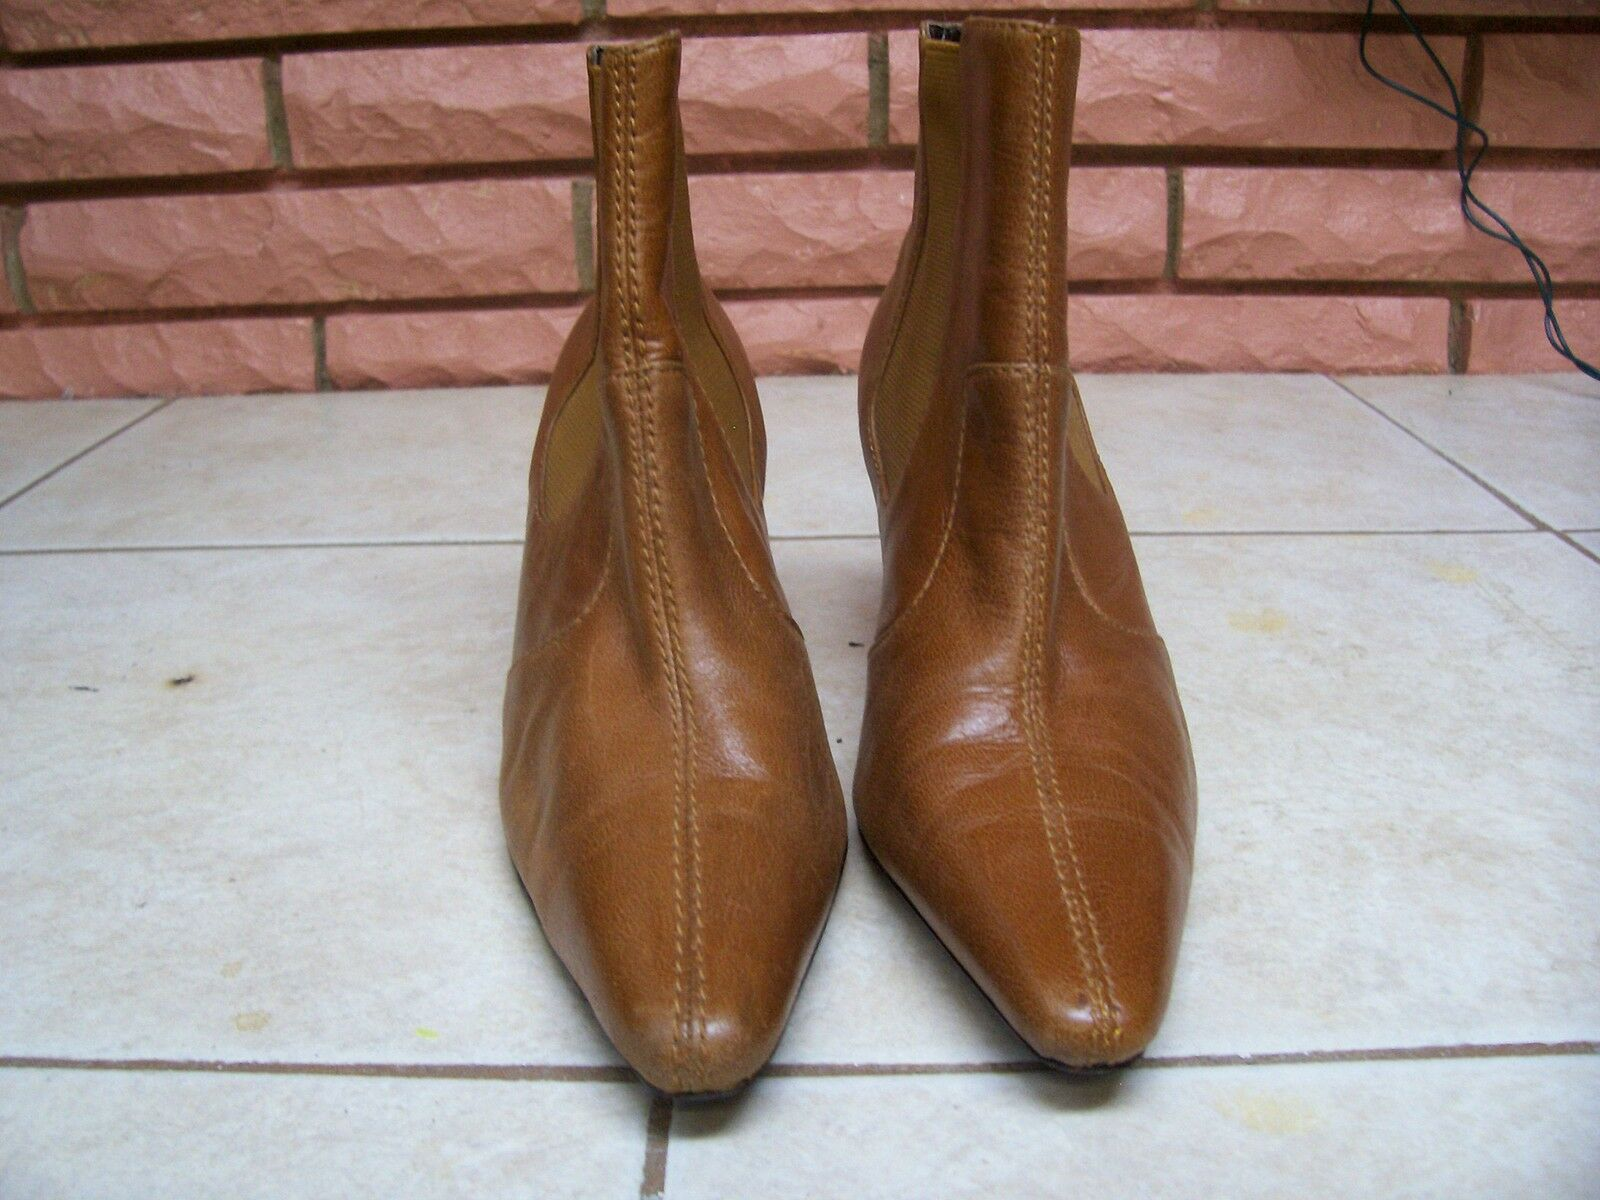 MODA SPANA TAN LEATHER ANKLE BOOTS SIZE 6 1/2 M